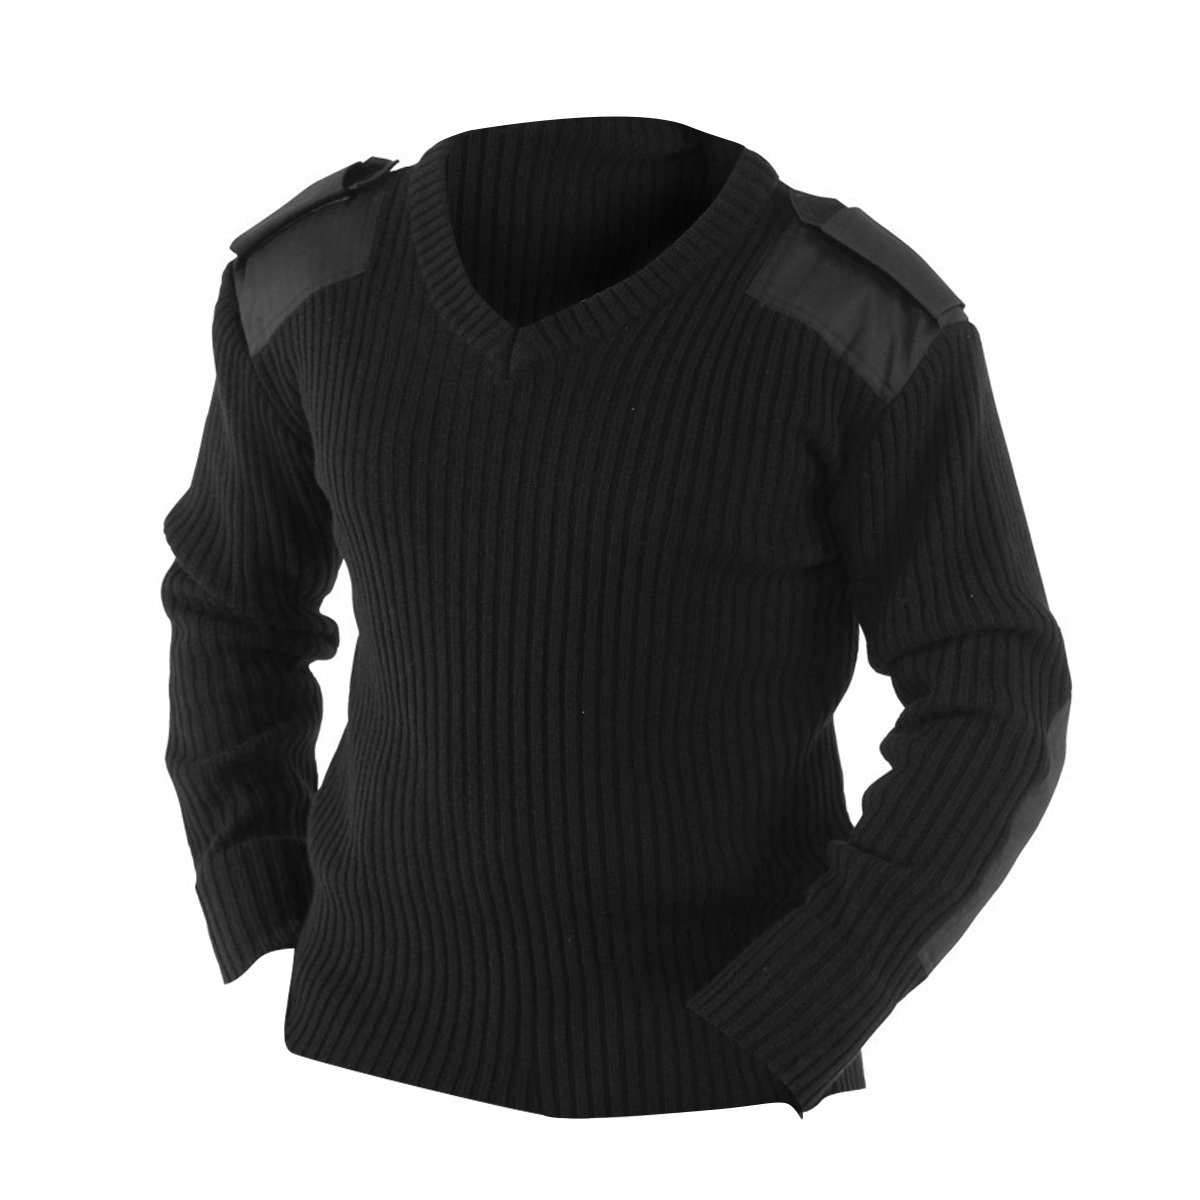 Yoko Mens V-Neck NATO Security Sweater/Workwear